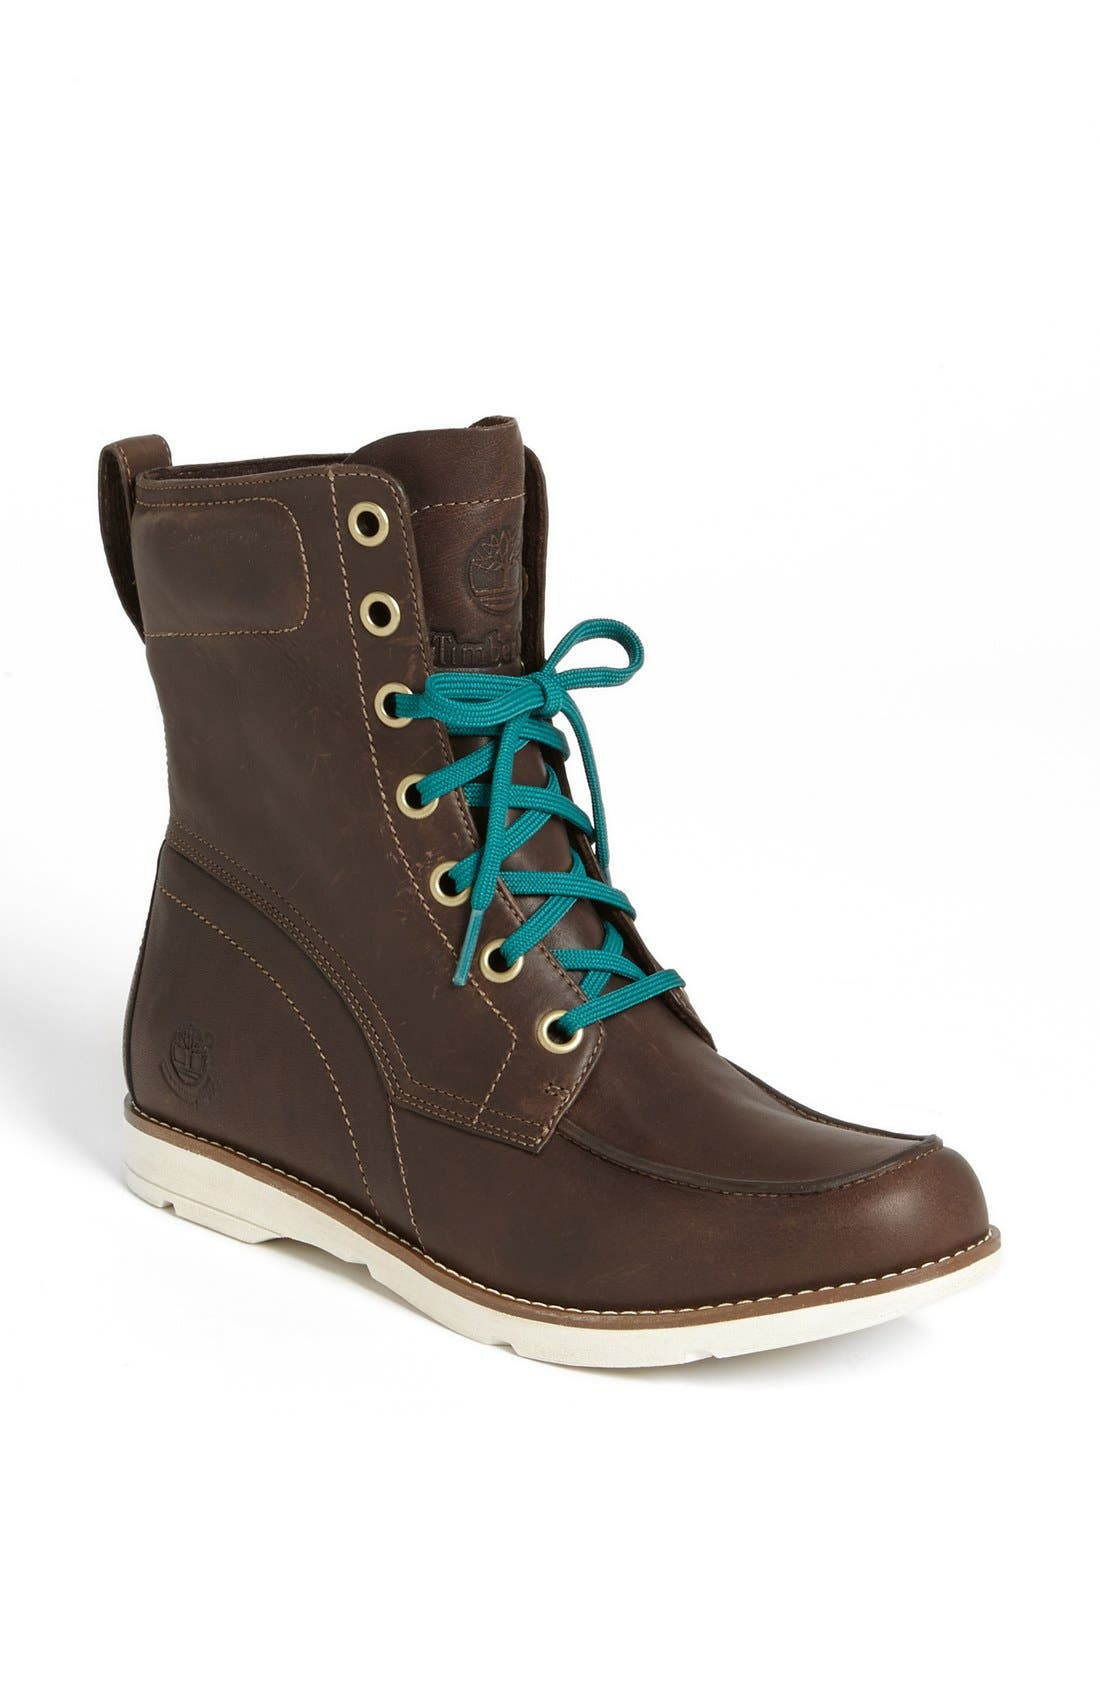 Alternate Image 1 Selected - Timberland Earthkeepers® 'Mosley' Waterproof Boot